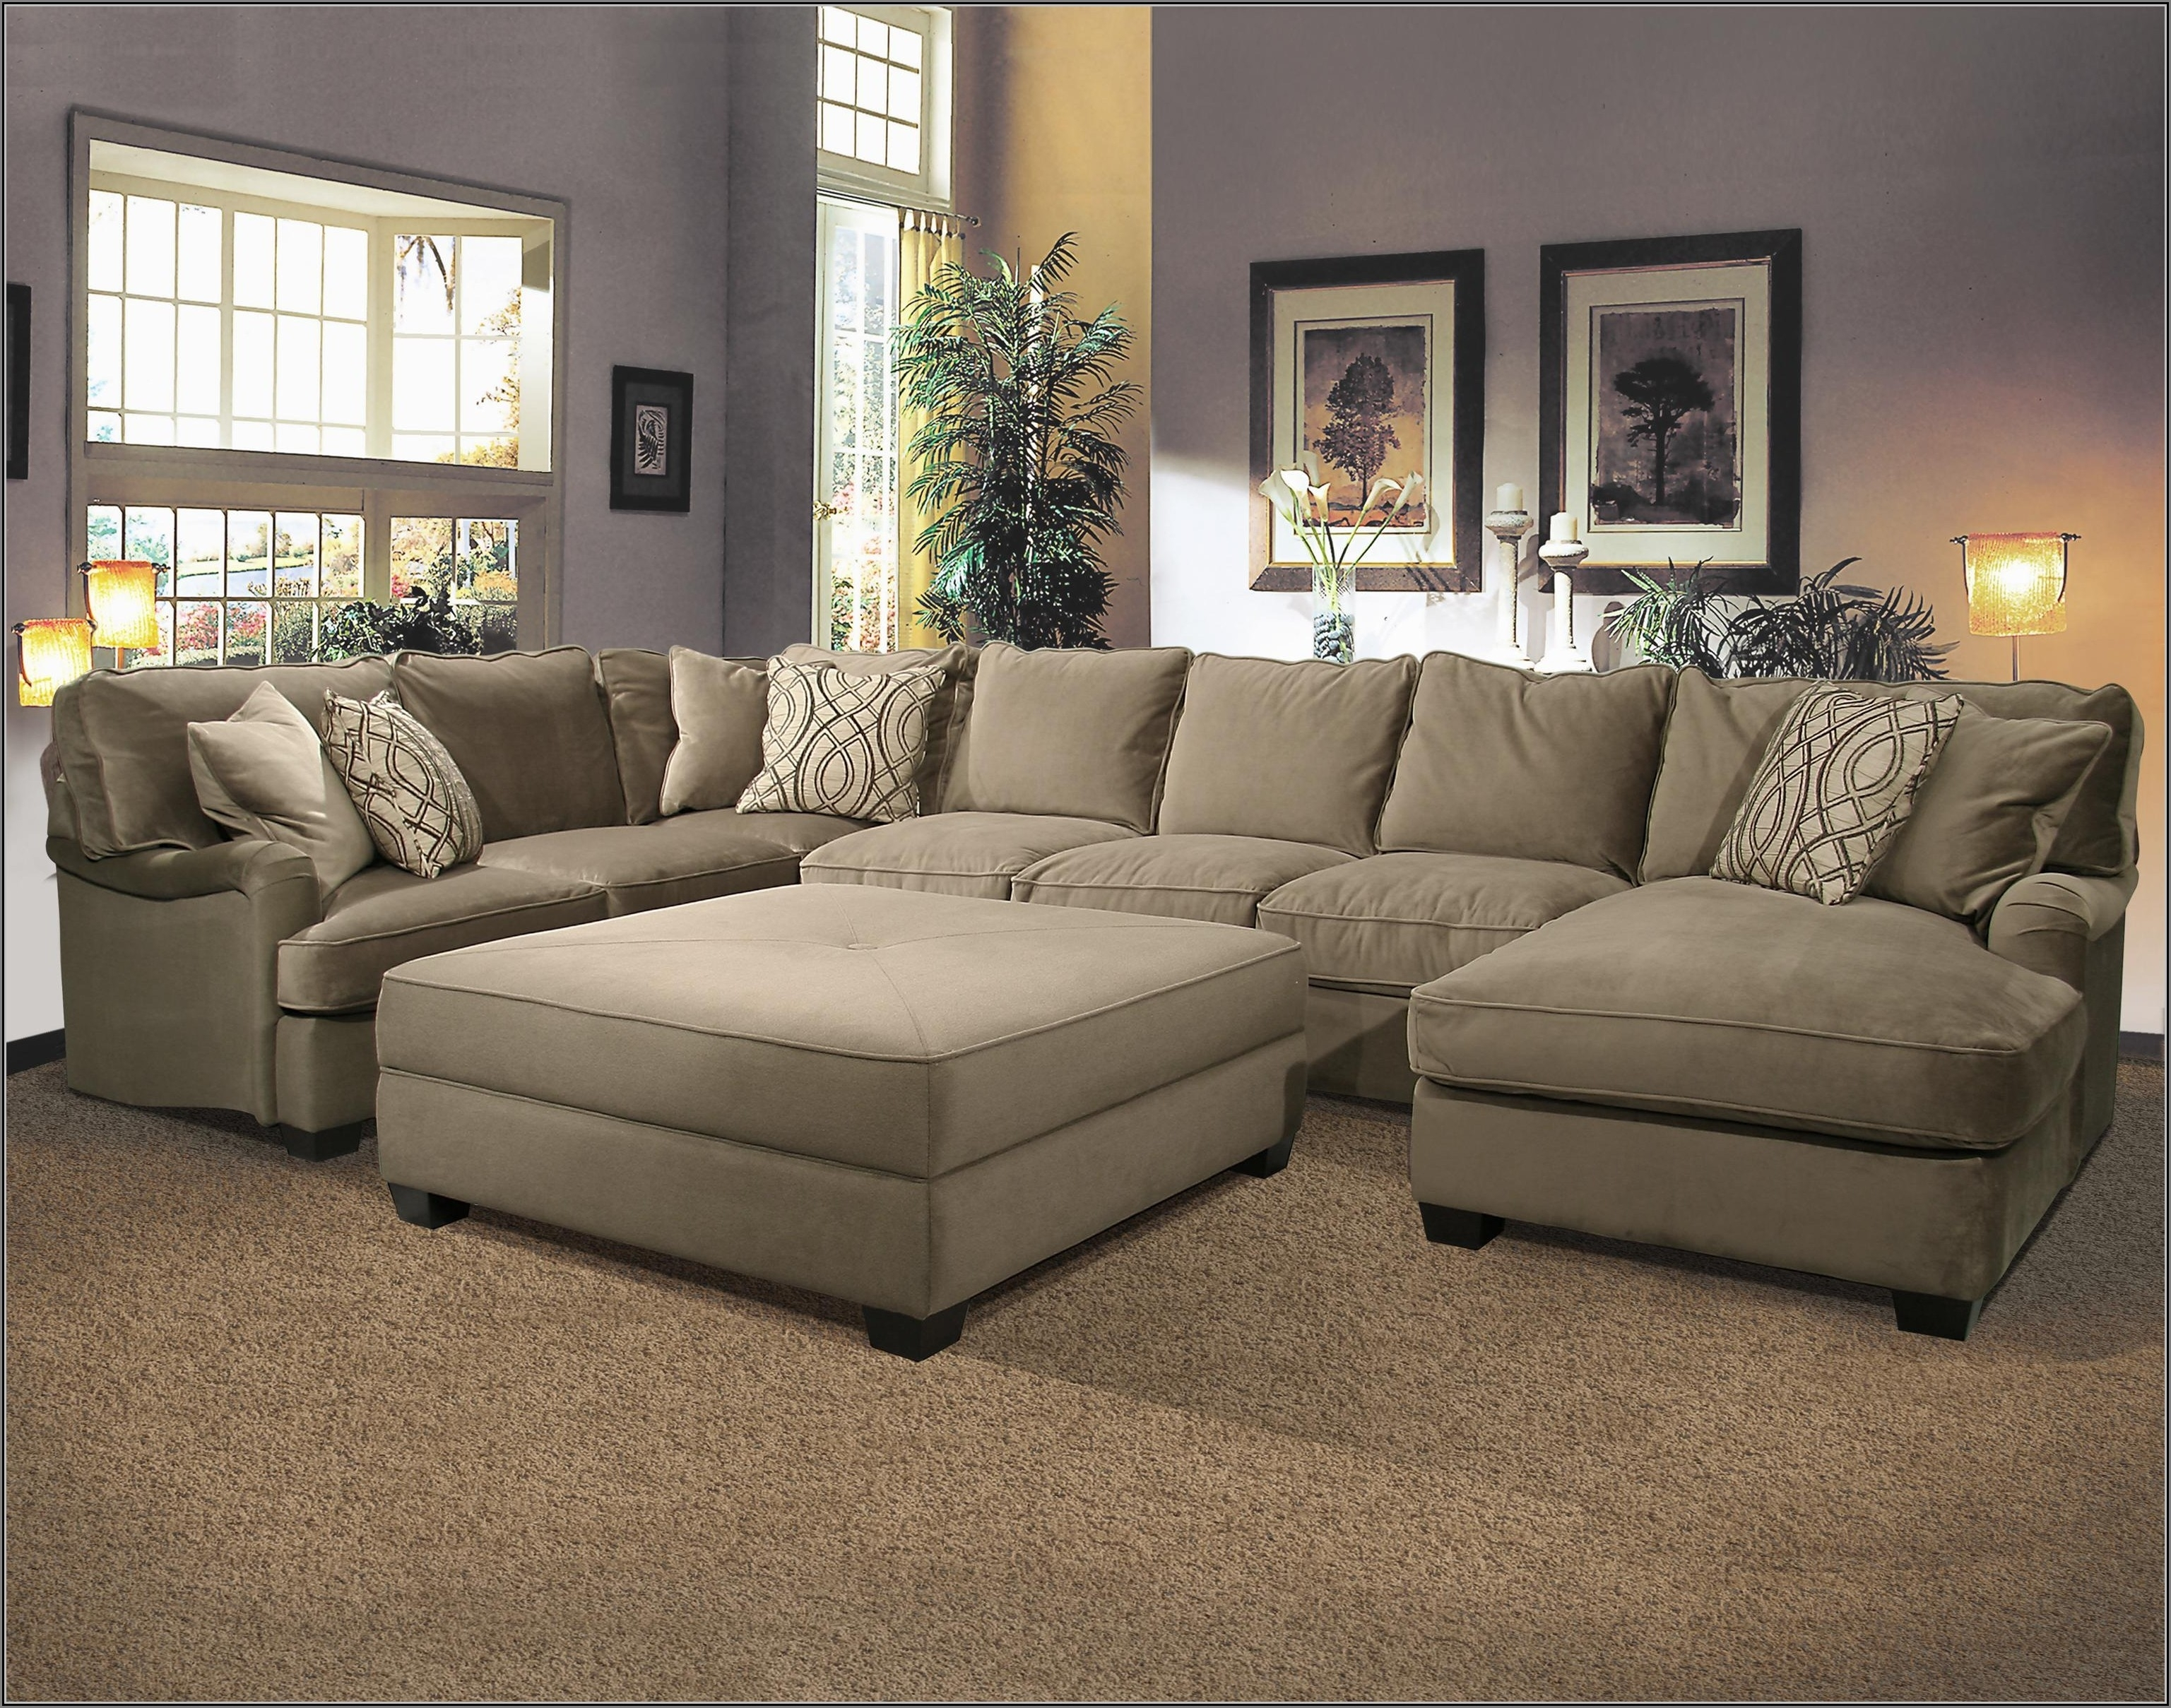 Sectional Sofa With Large Ottoman Hotelsbacau Com Intended For Within Sectional Sofas With Ottoman (View 15 of 15)